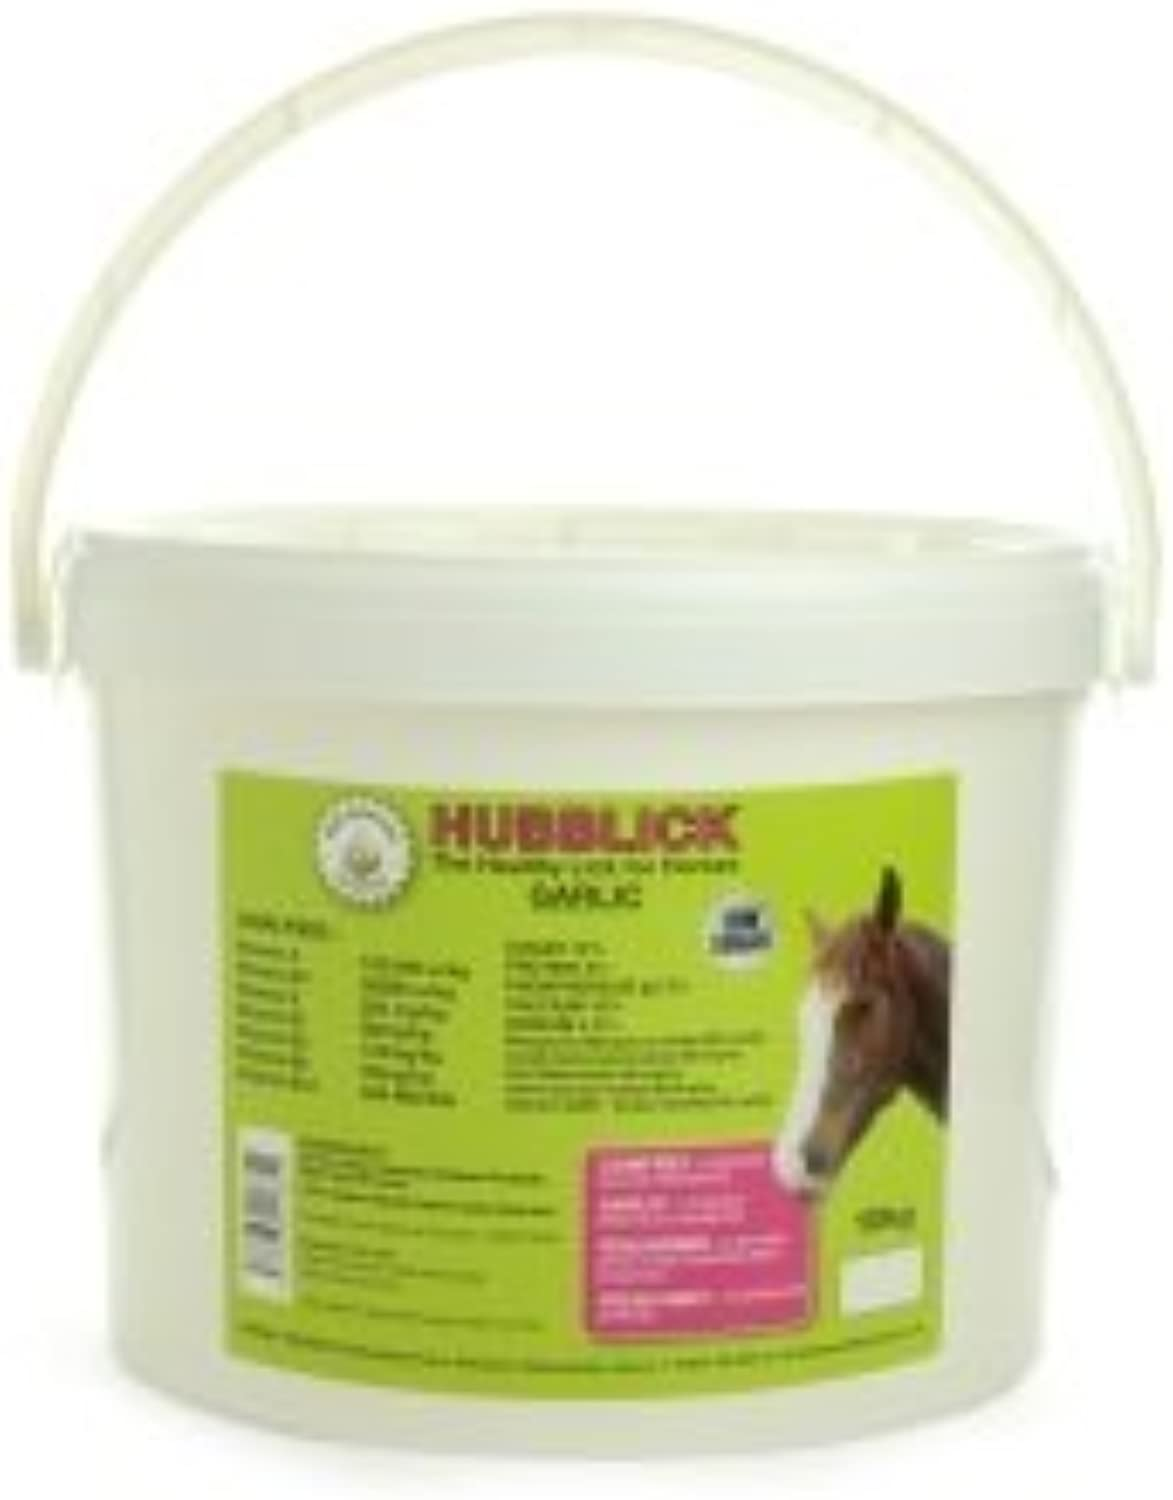 Hubblick Field Lick Mint  A Healthy Lick Suitable For All Horses & Ponies Low In Sugar & High Levels Of Minerals, Vitamins & Trace Elements  10kg